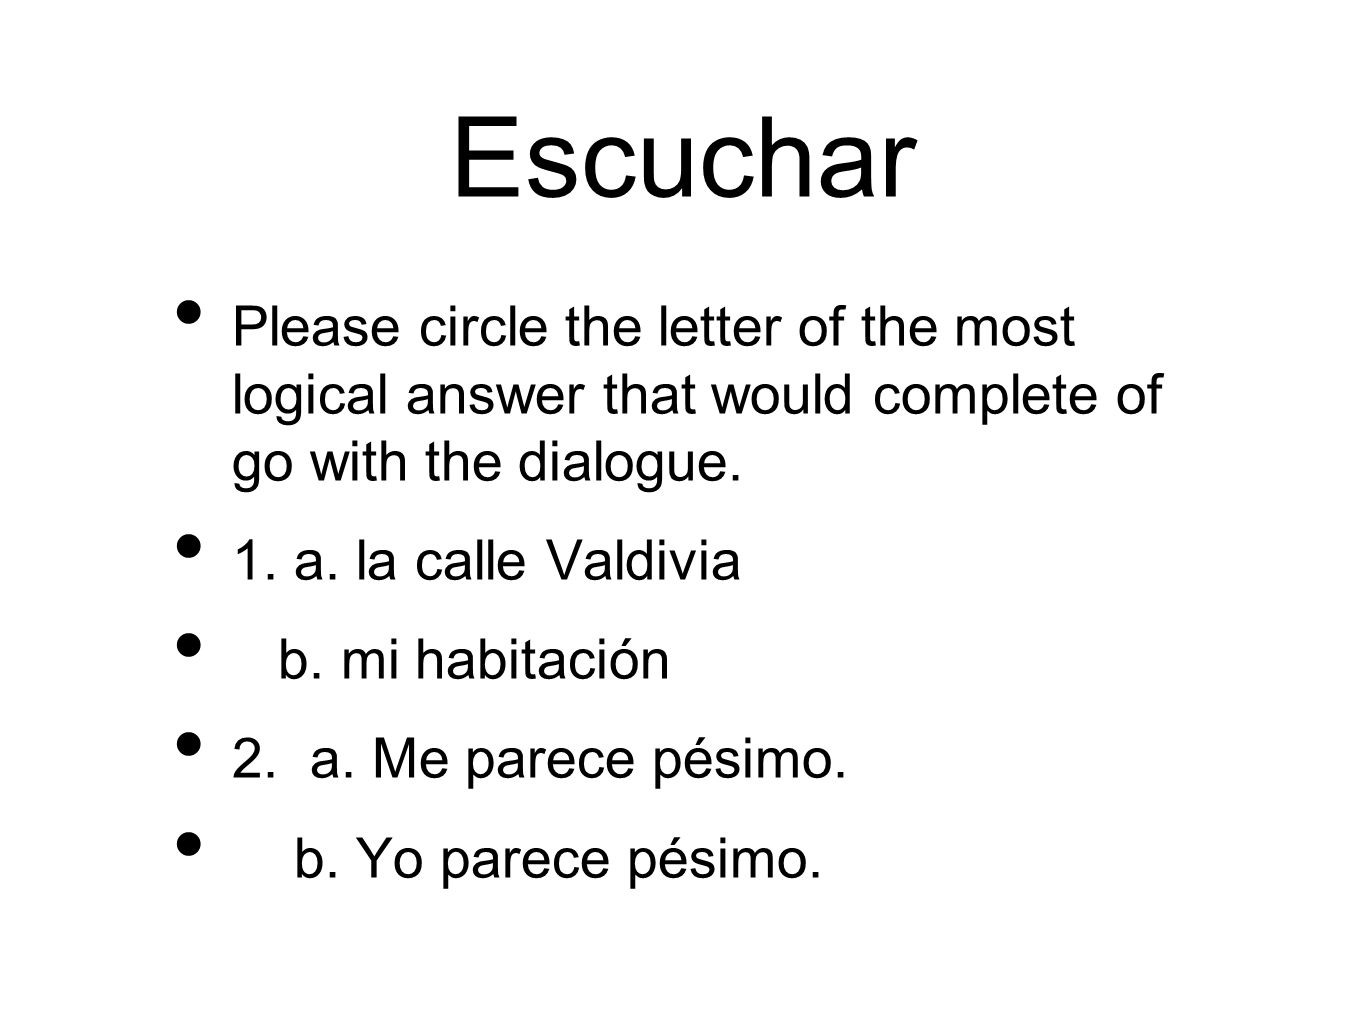 Escuchar Please circle the letter of the most logical answer that would complete of go with the dialogue.